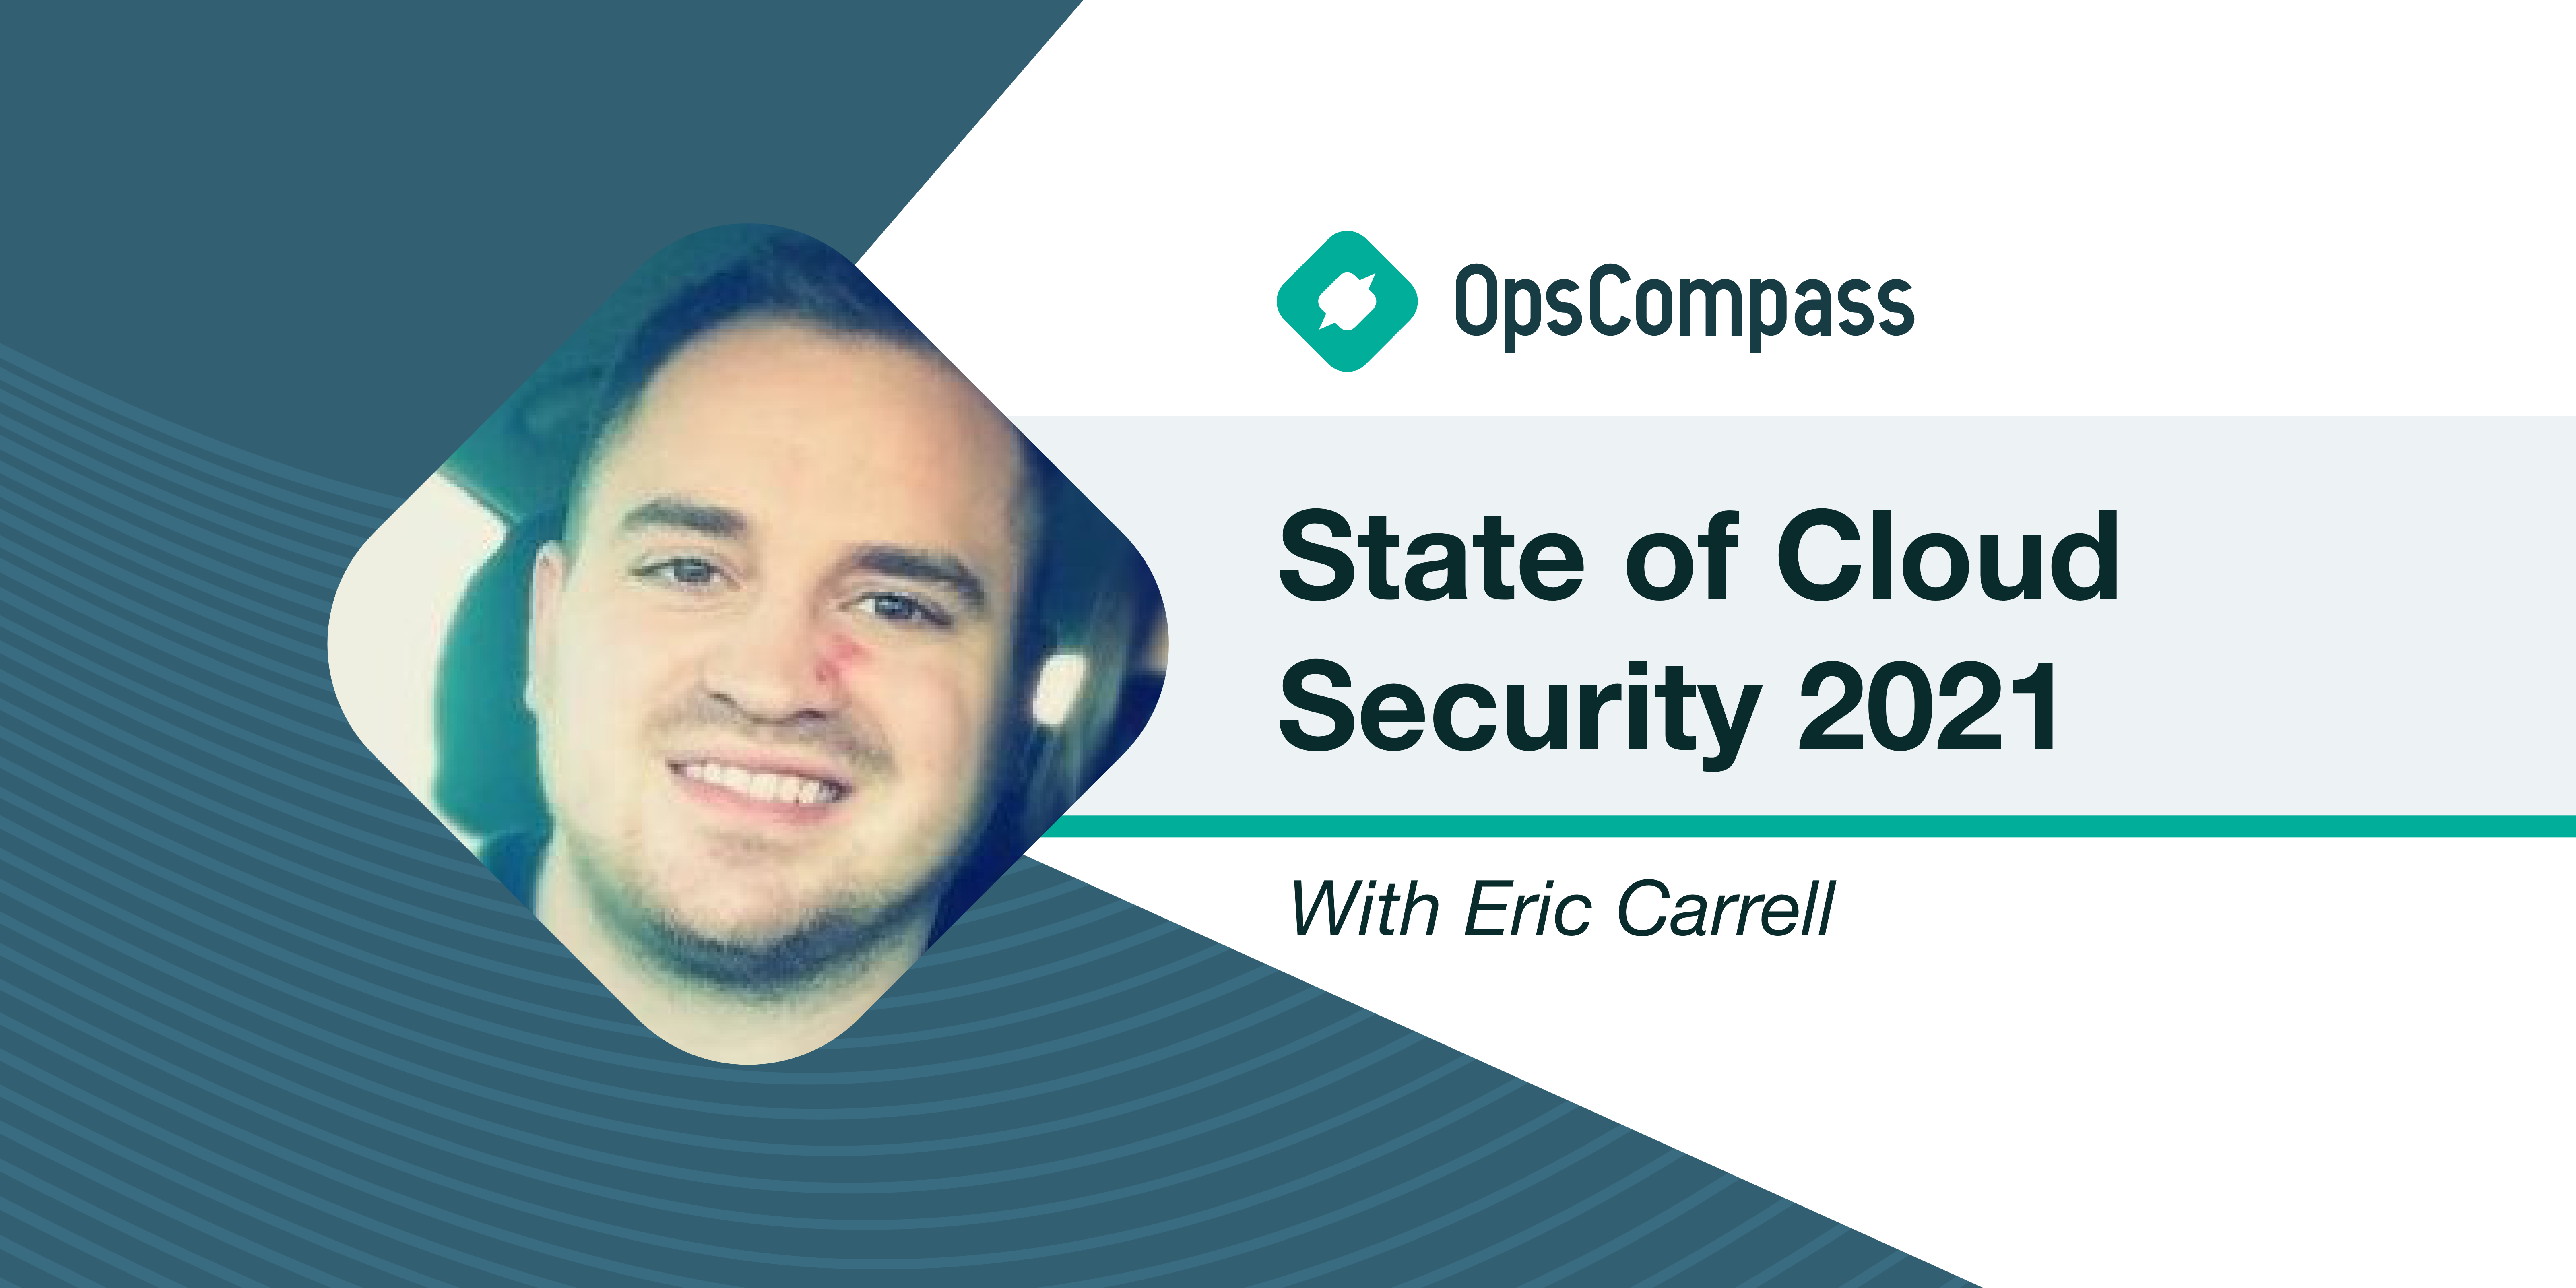 The State of Cloud Security — Insights From Eric Carrell